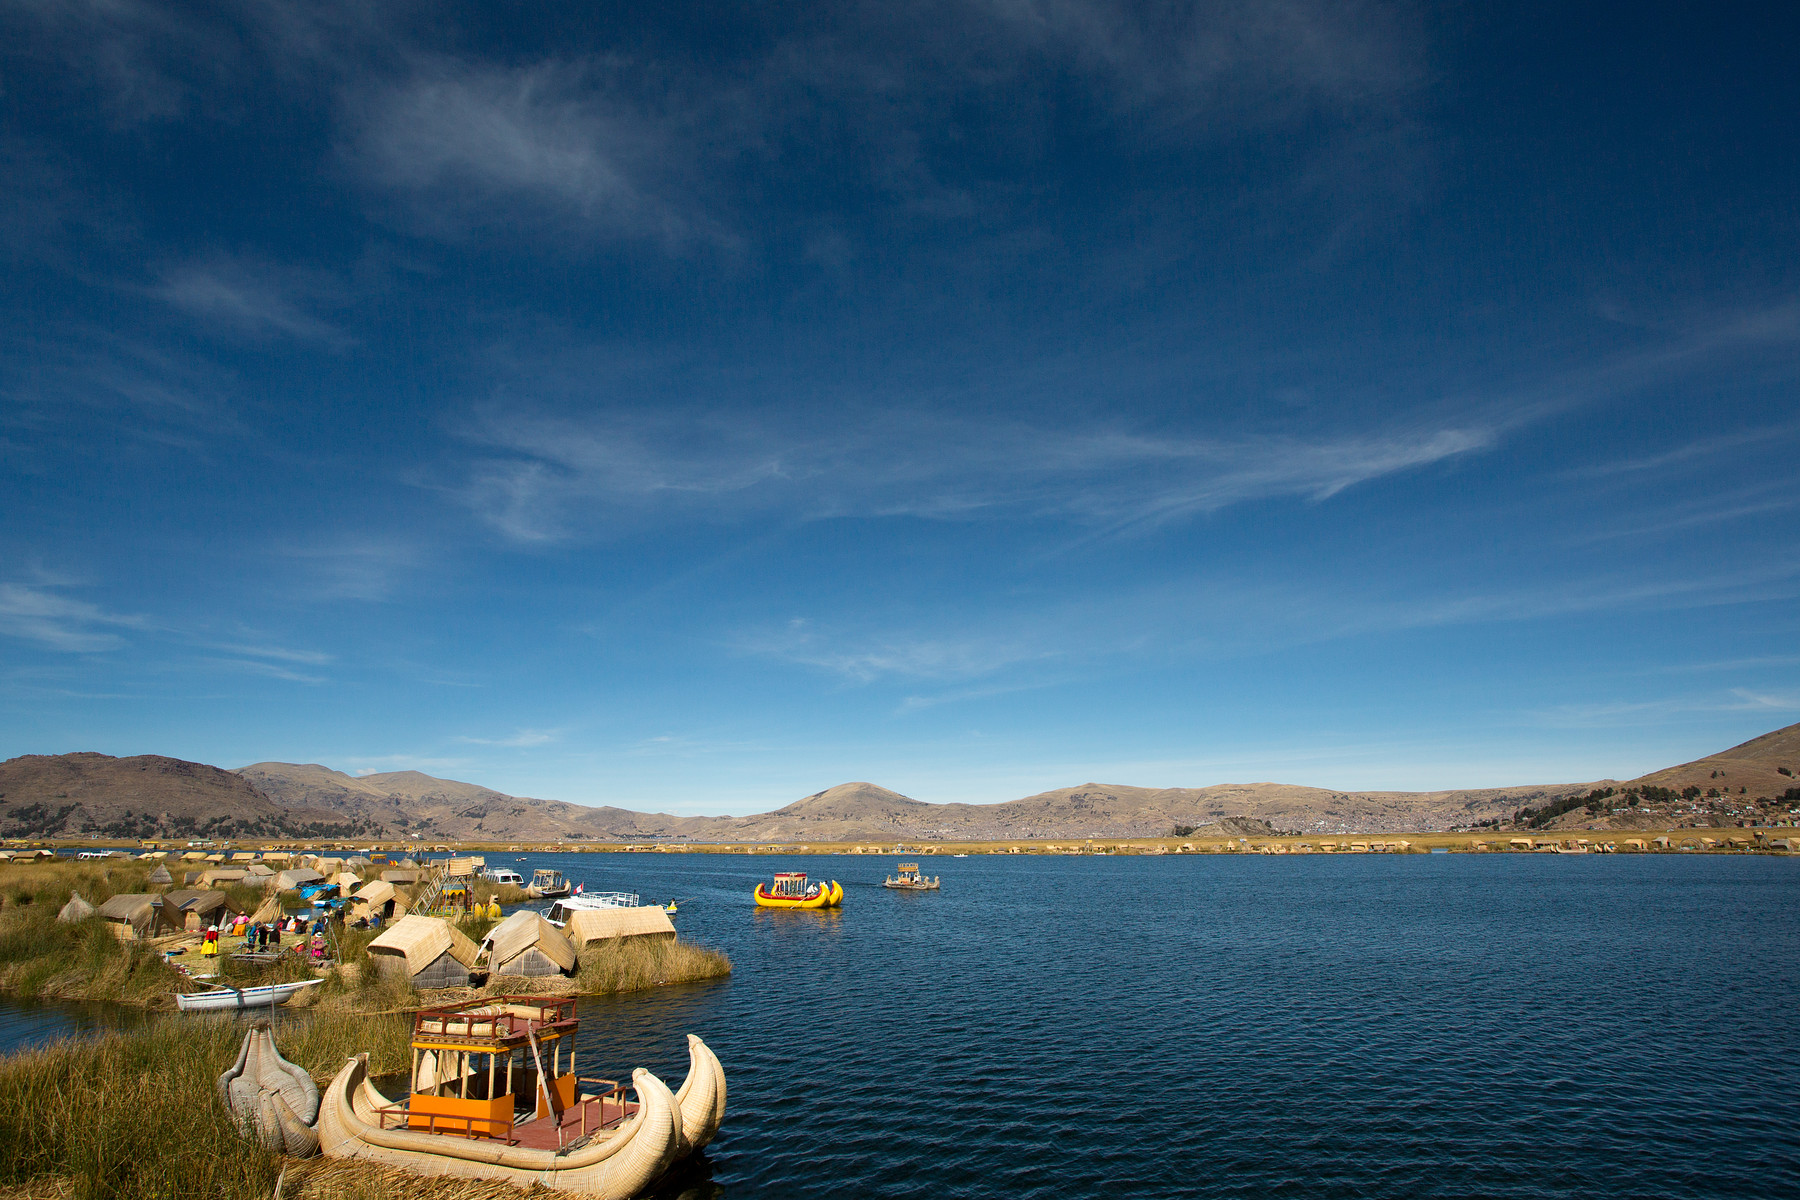 Uros Floating Islands // Peru